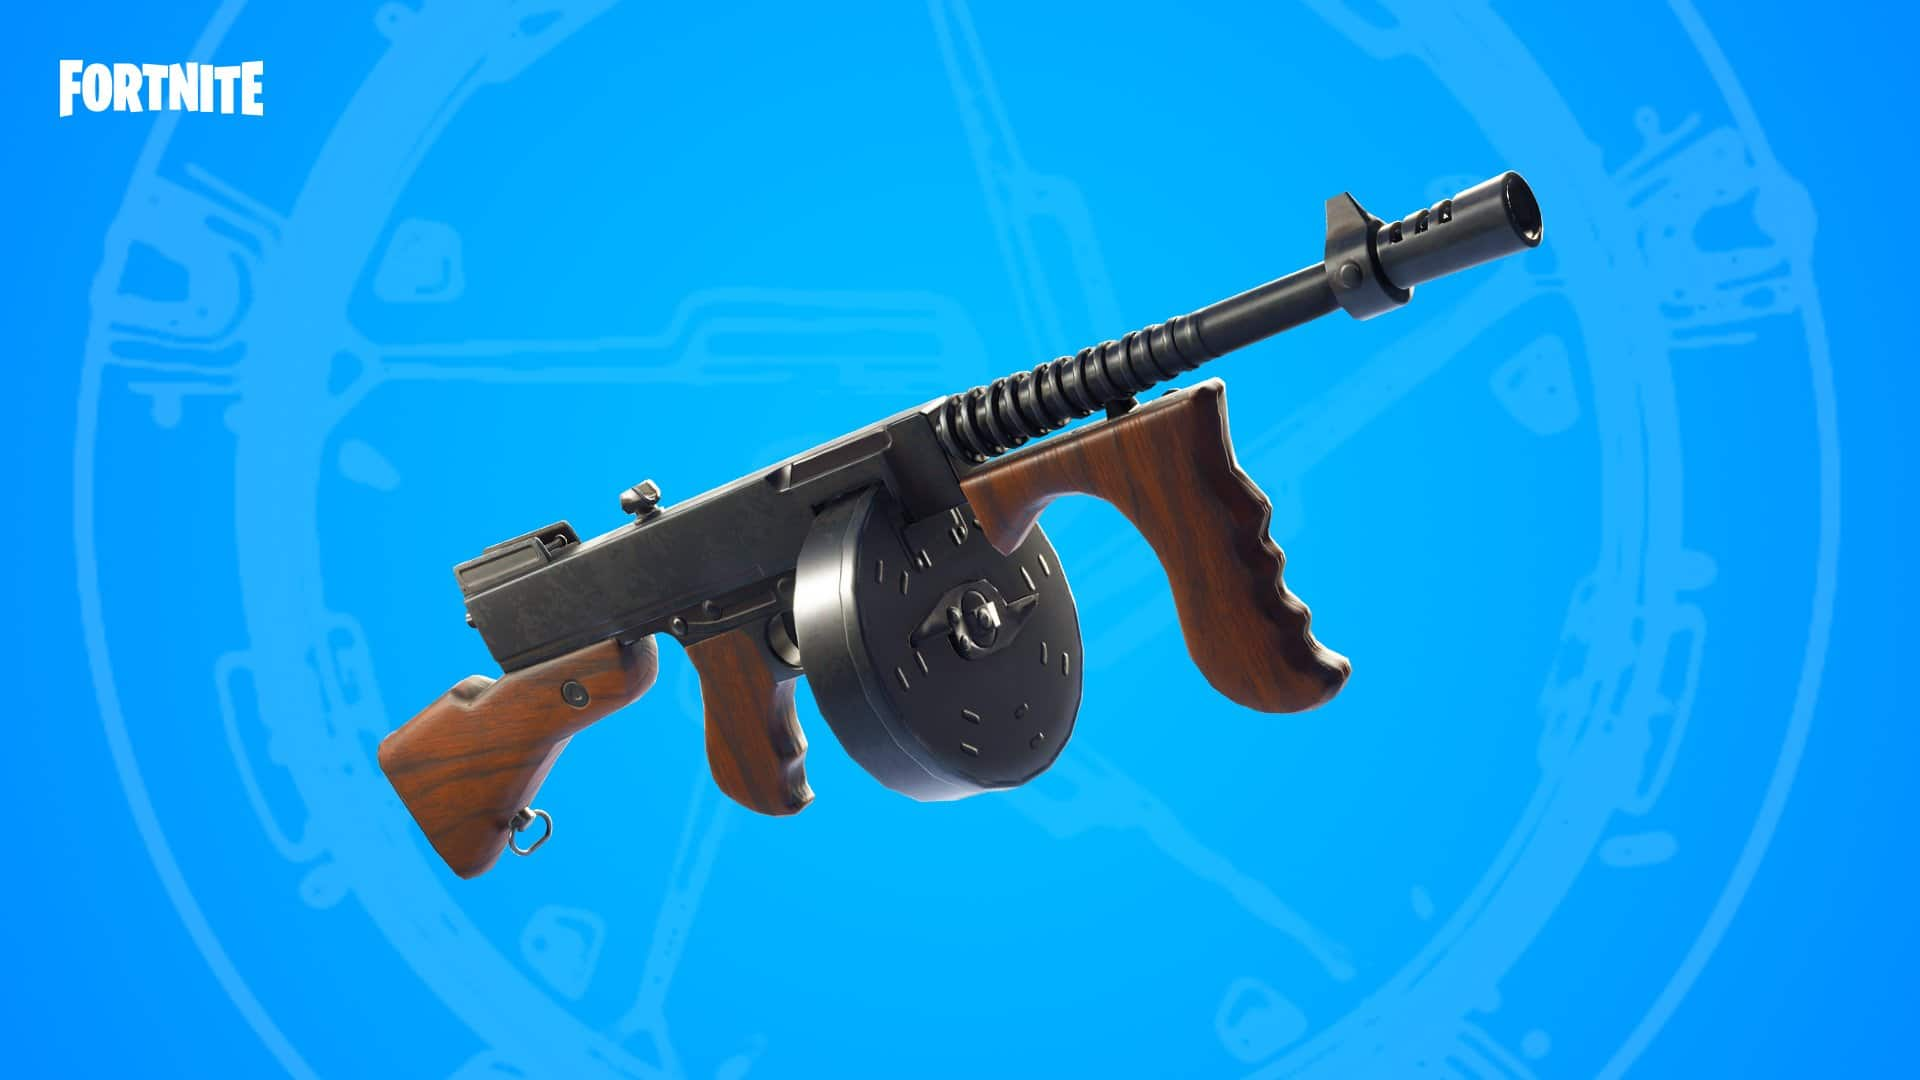 V9 01 Fortnite Patch Notes Highlights Drum Gun Ballers Nerfed